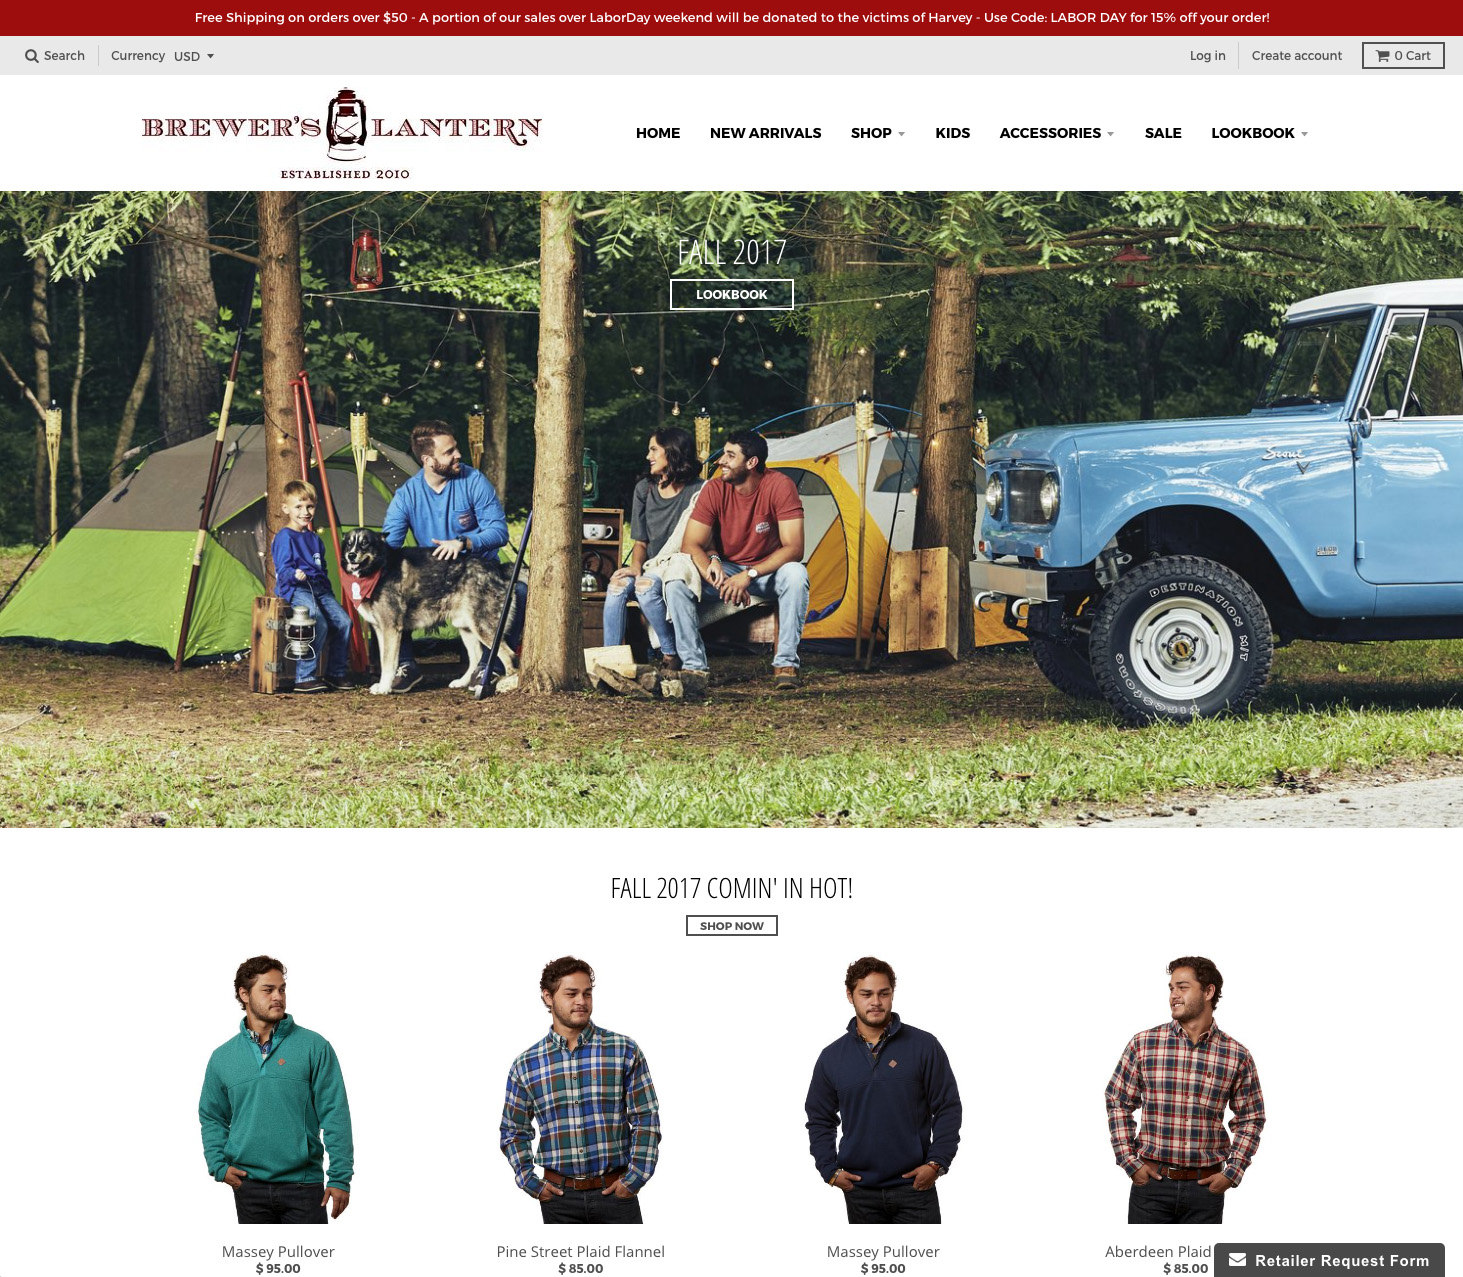 winslett-media-ecommerce-photographer-site-example-05.jpg